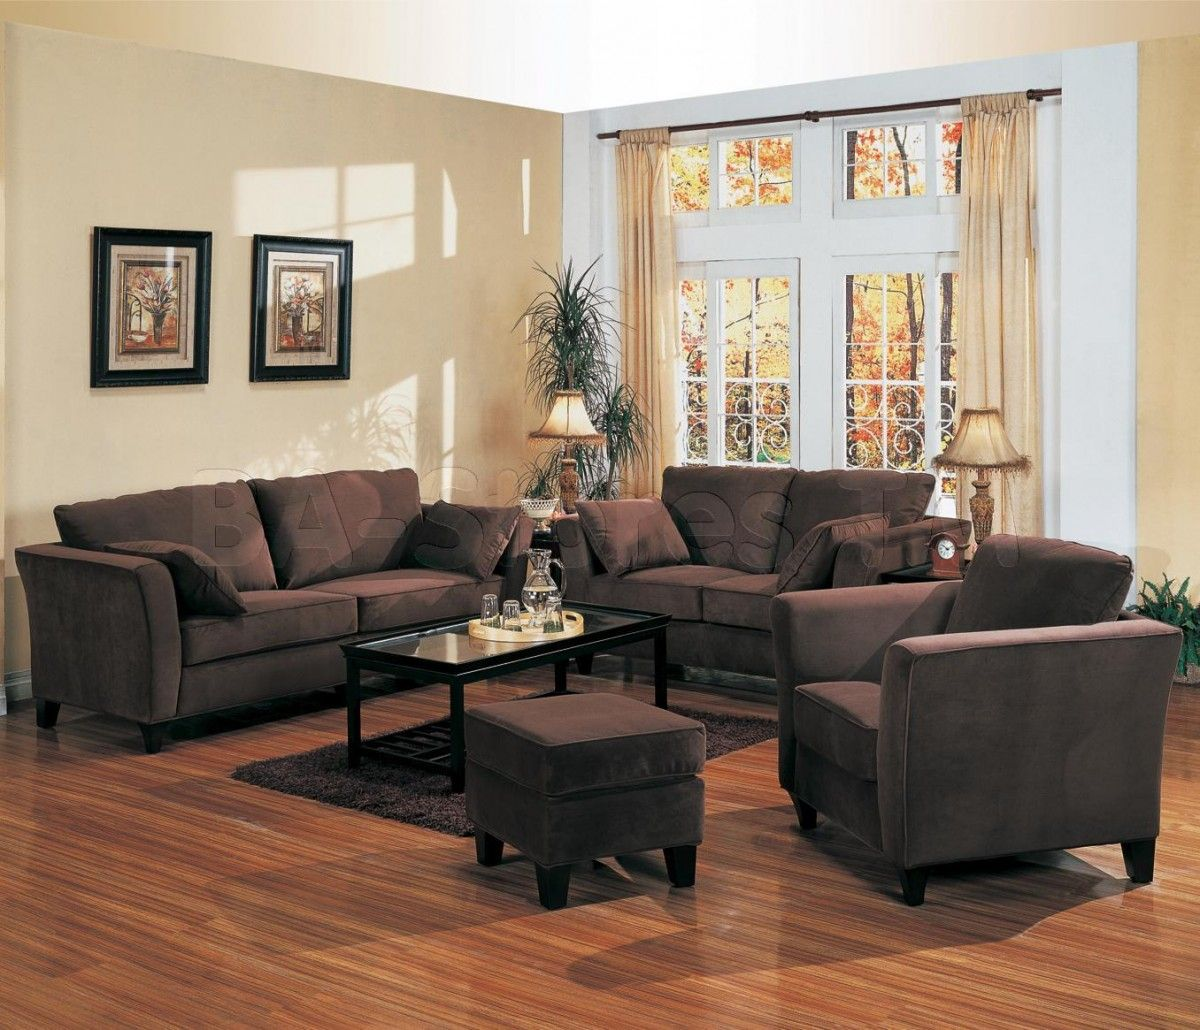 Wall-colour-with-brown-furniture-wall-colors-that-go-with